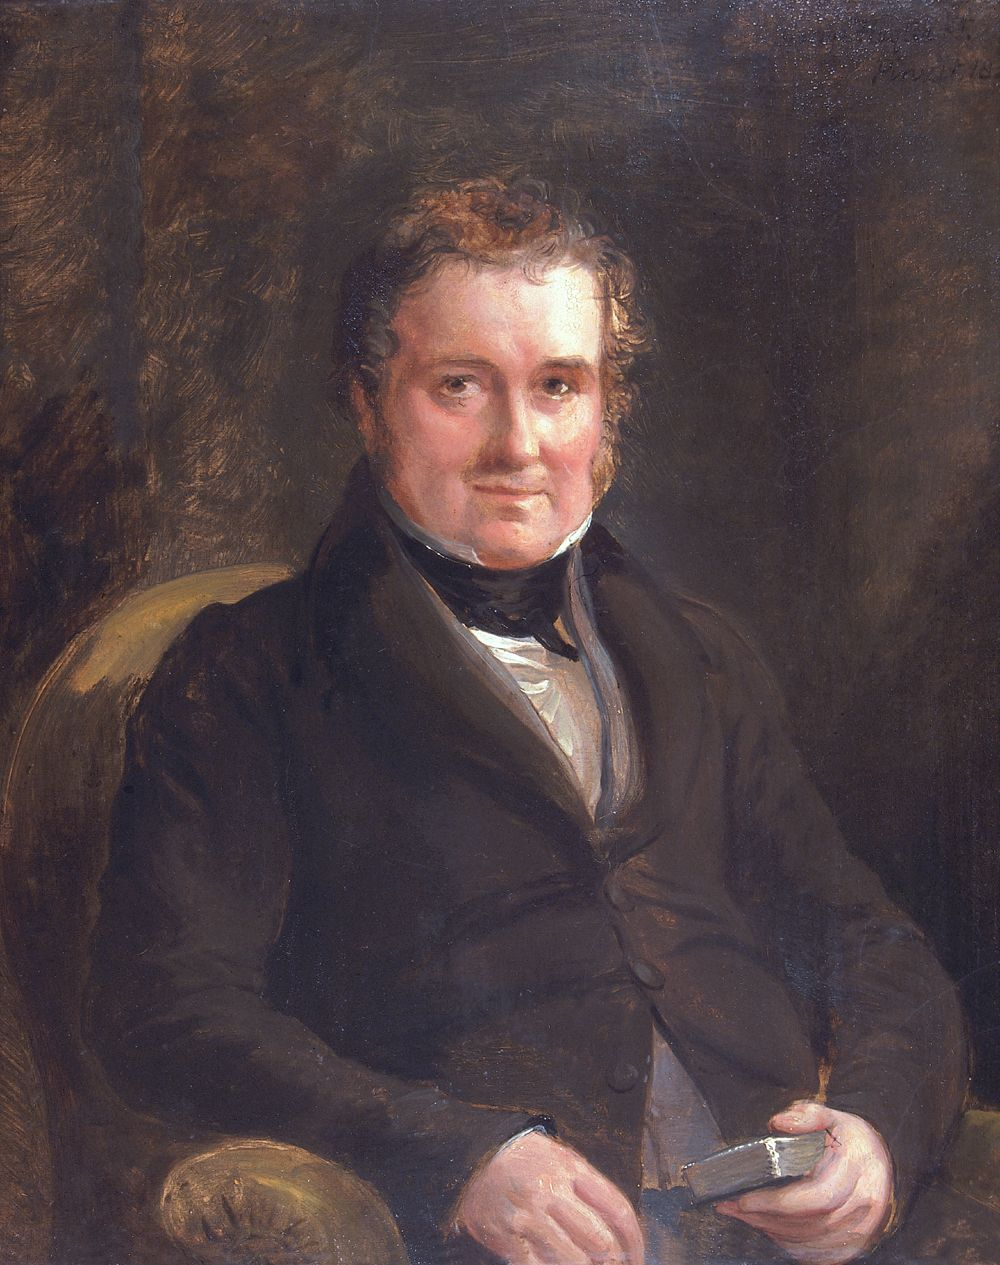 Lewis Weston Dillwyn, 1834-37 (Oil on canvas)